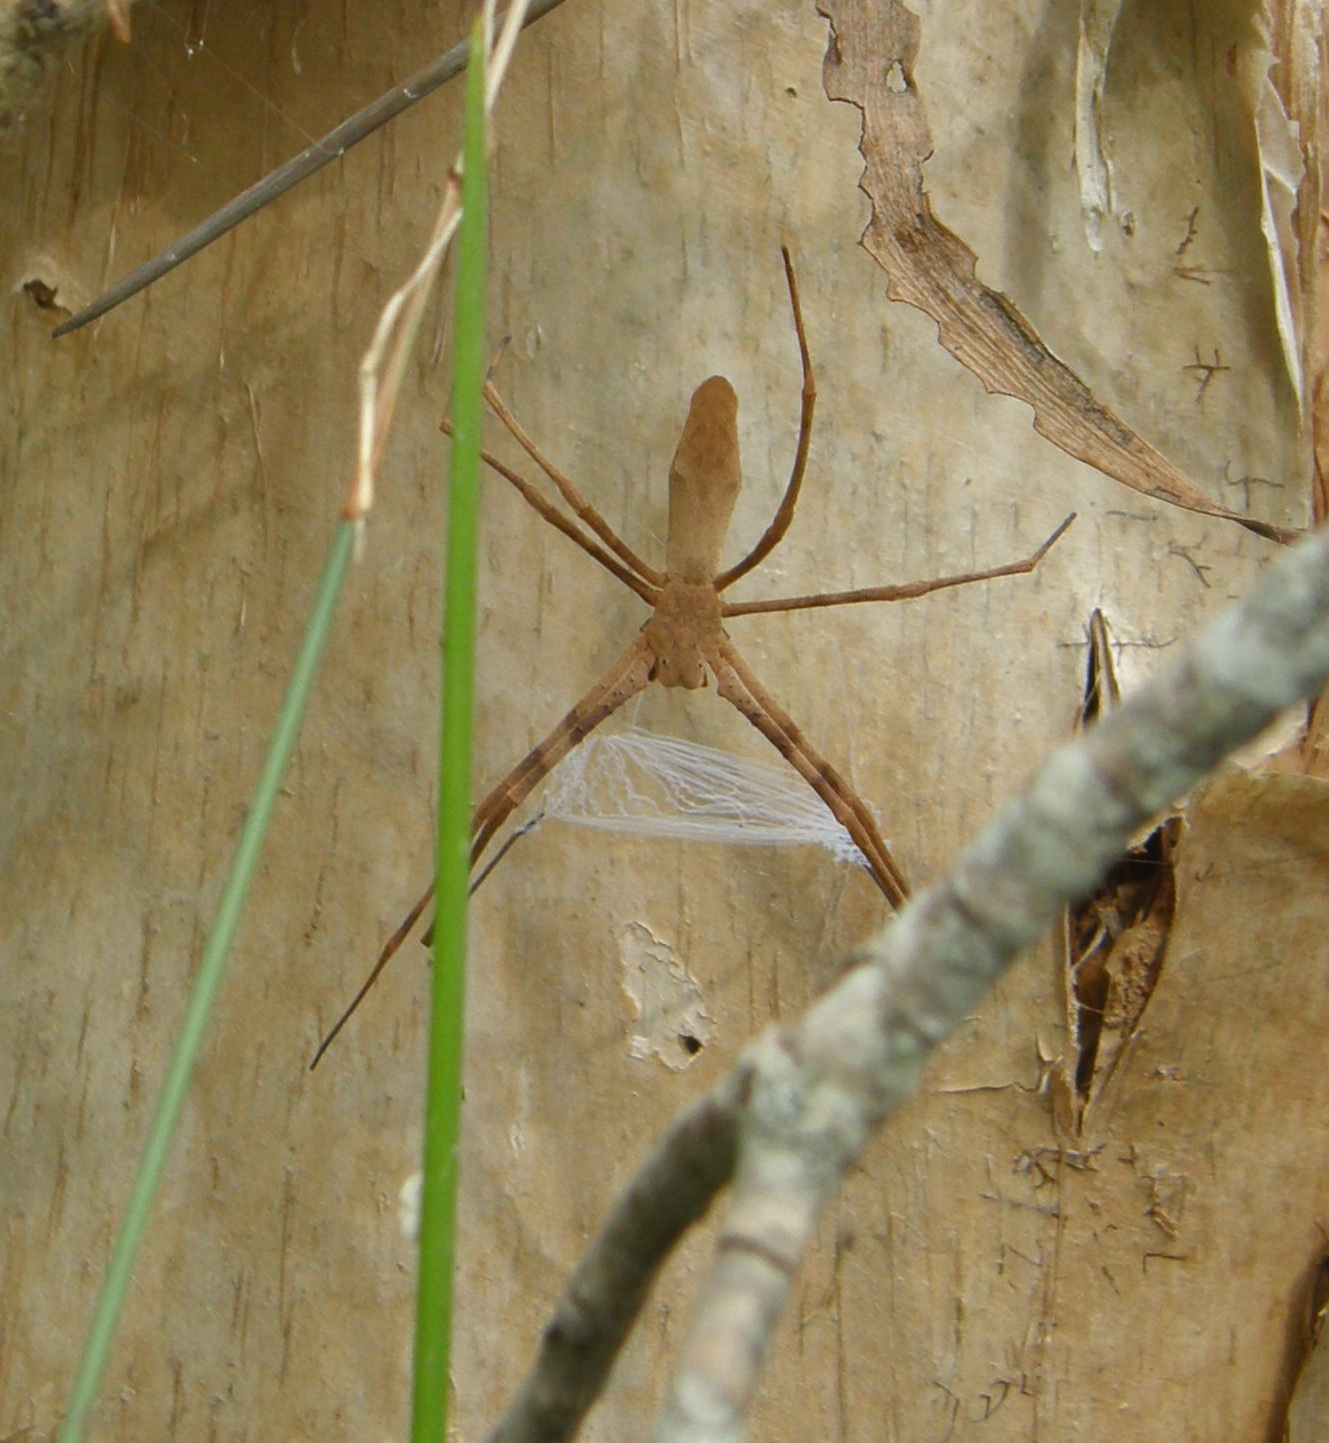 A net-casting spider. Instead of sitting in a large web they make a small one to throw over their prey.